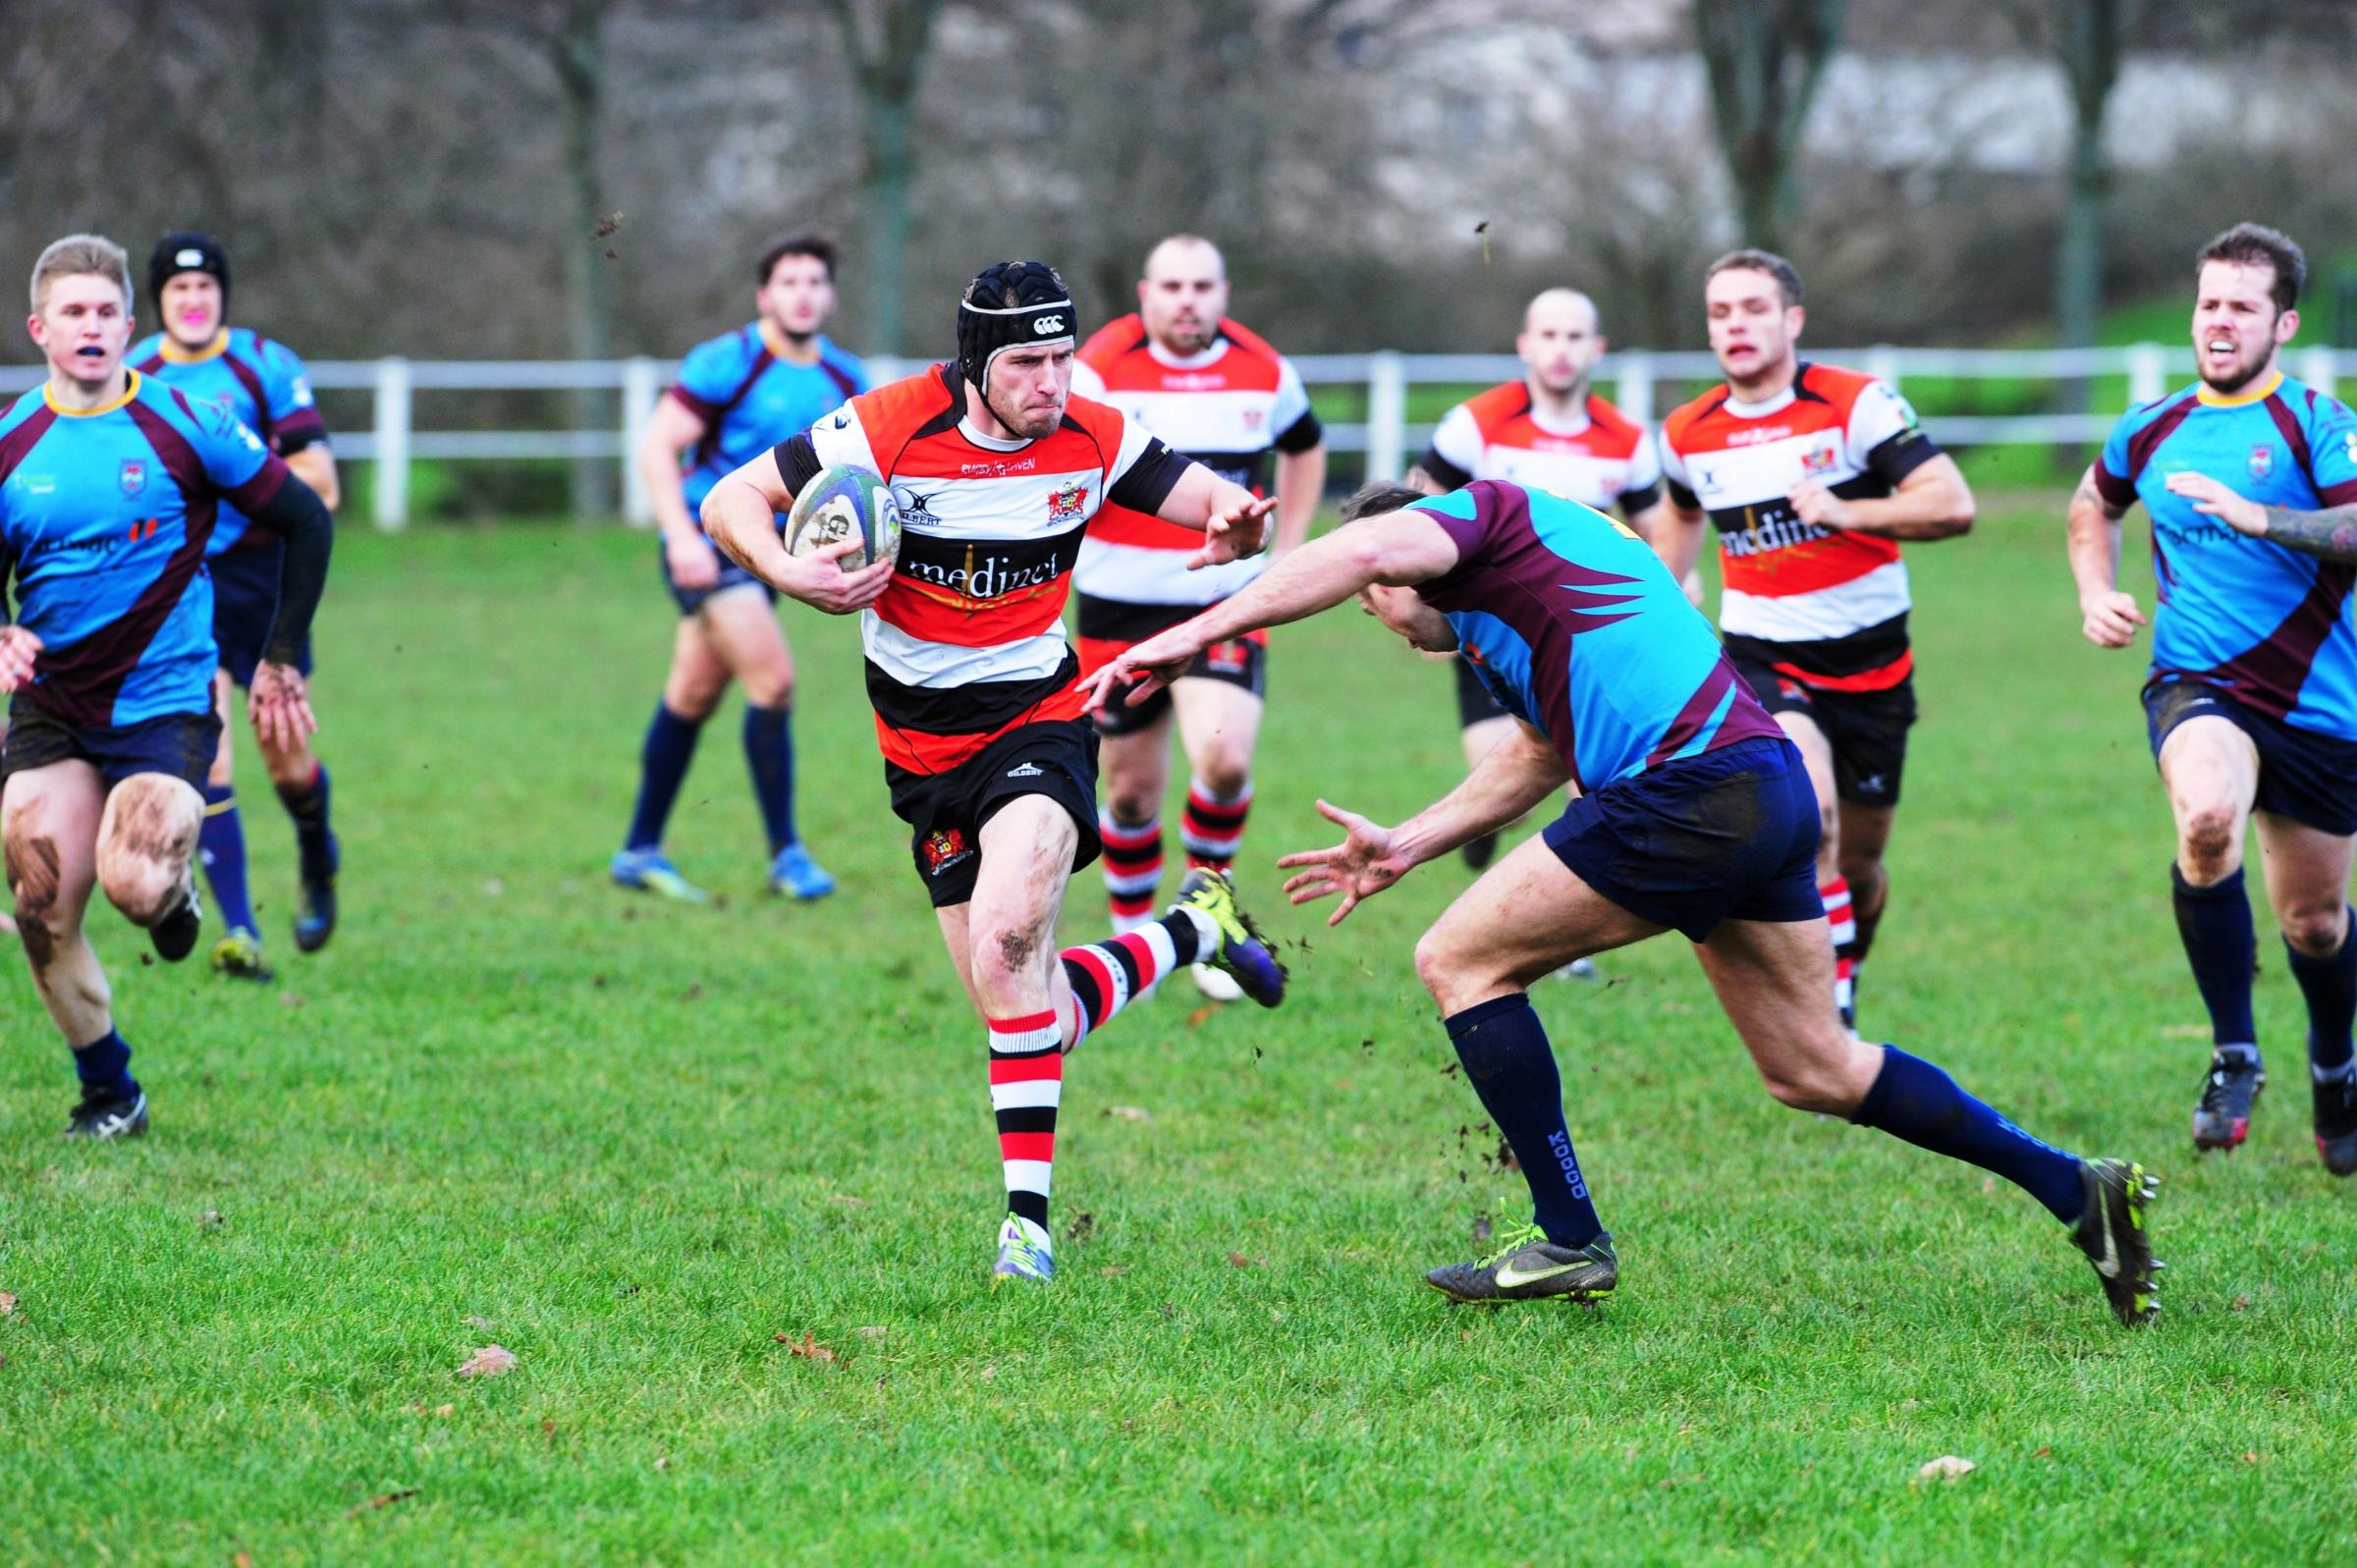 Crunch time for Pontypool RFC – coach